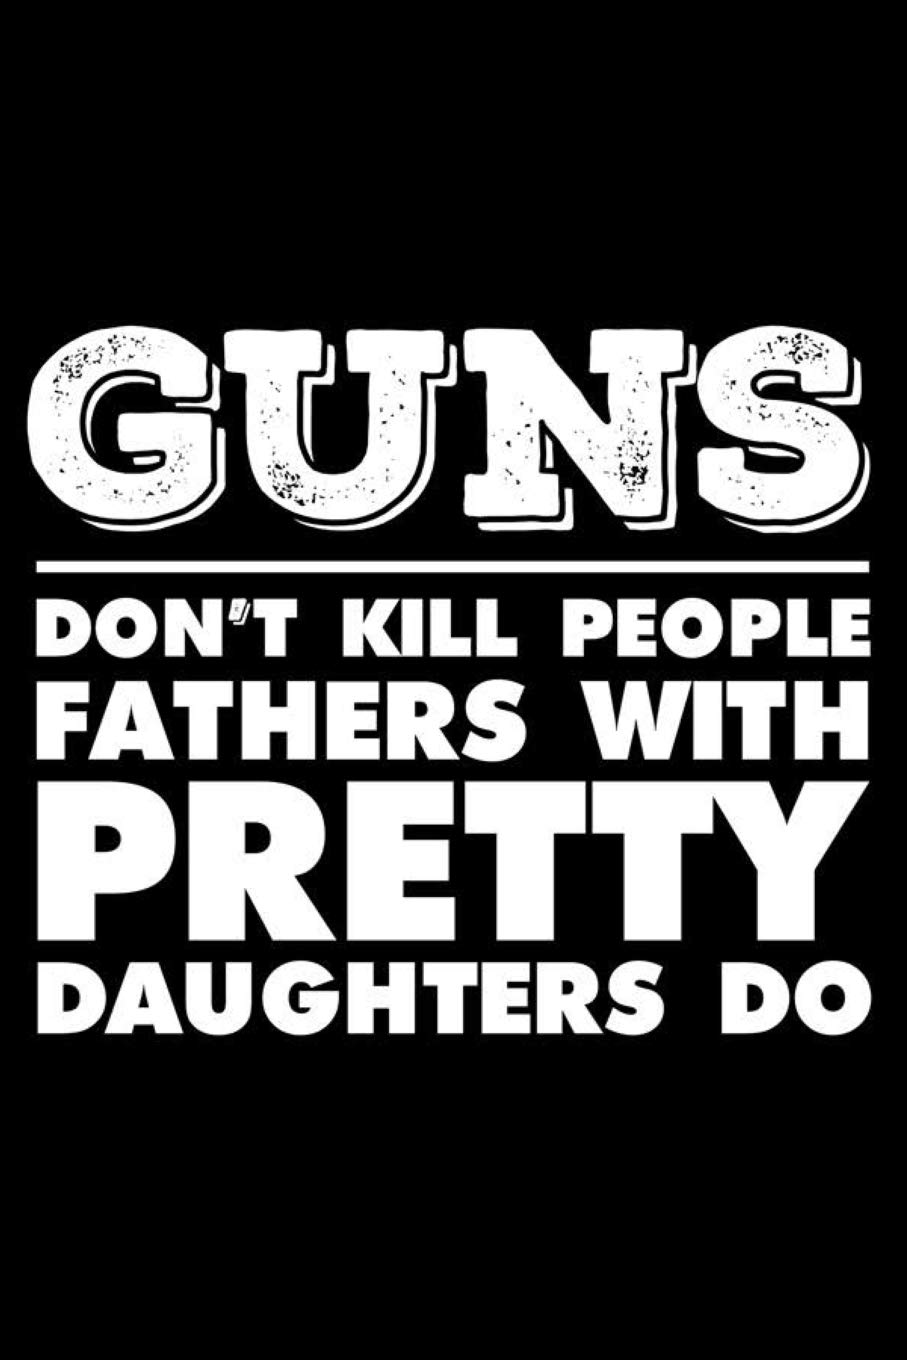 Guns Don T Kill People Fathers With Pretty Daughters Do Happy Father S Day Funny Protective Dads Keepsake For Memories And Stories Dad And Daughter Journal Publishing Magic Journal 9781095518267 Amazon Com Books